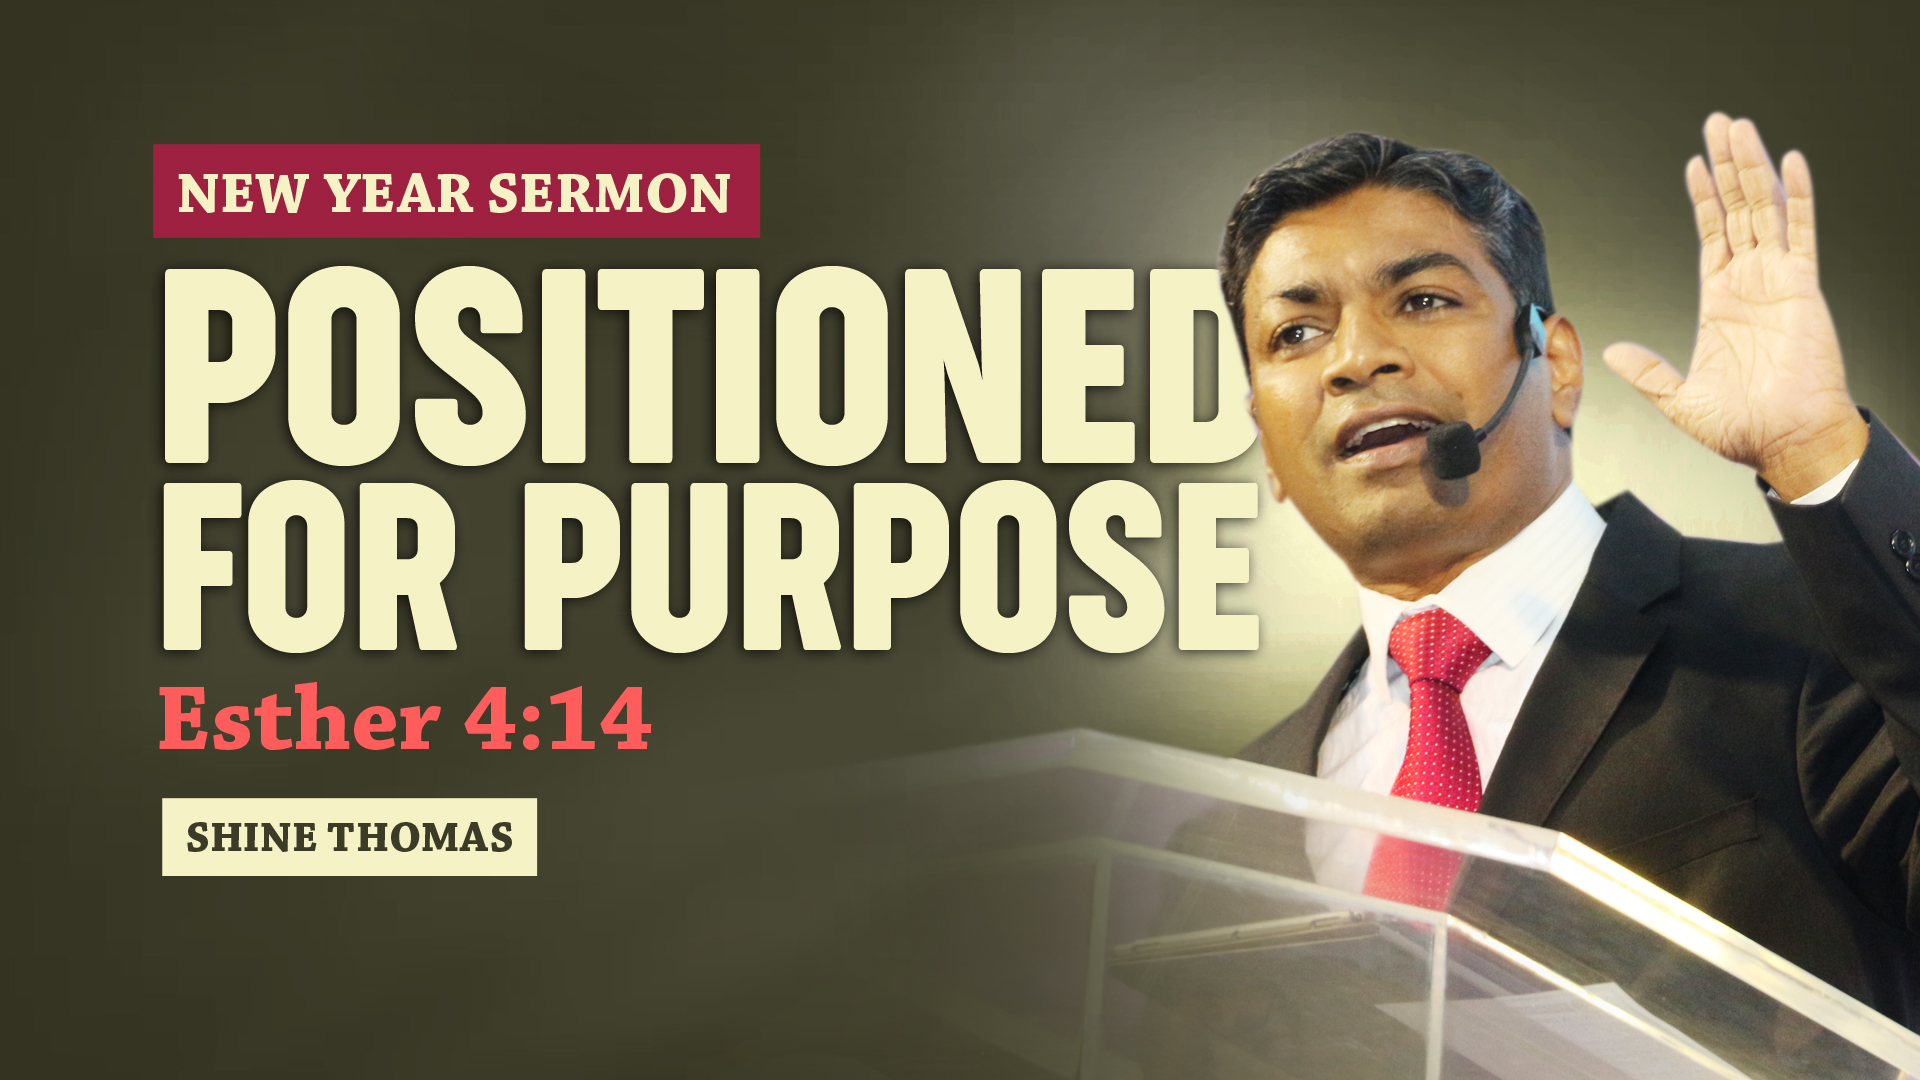 New Year Sermon | Positioned For Purpose | Esther 4:14